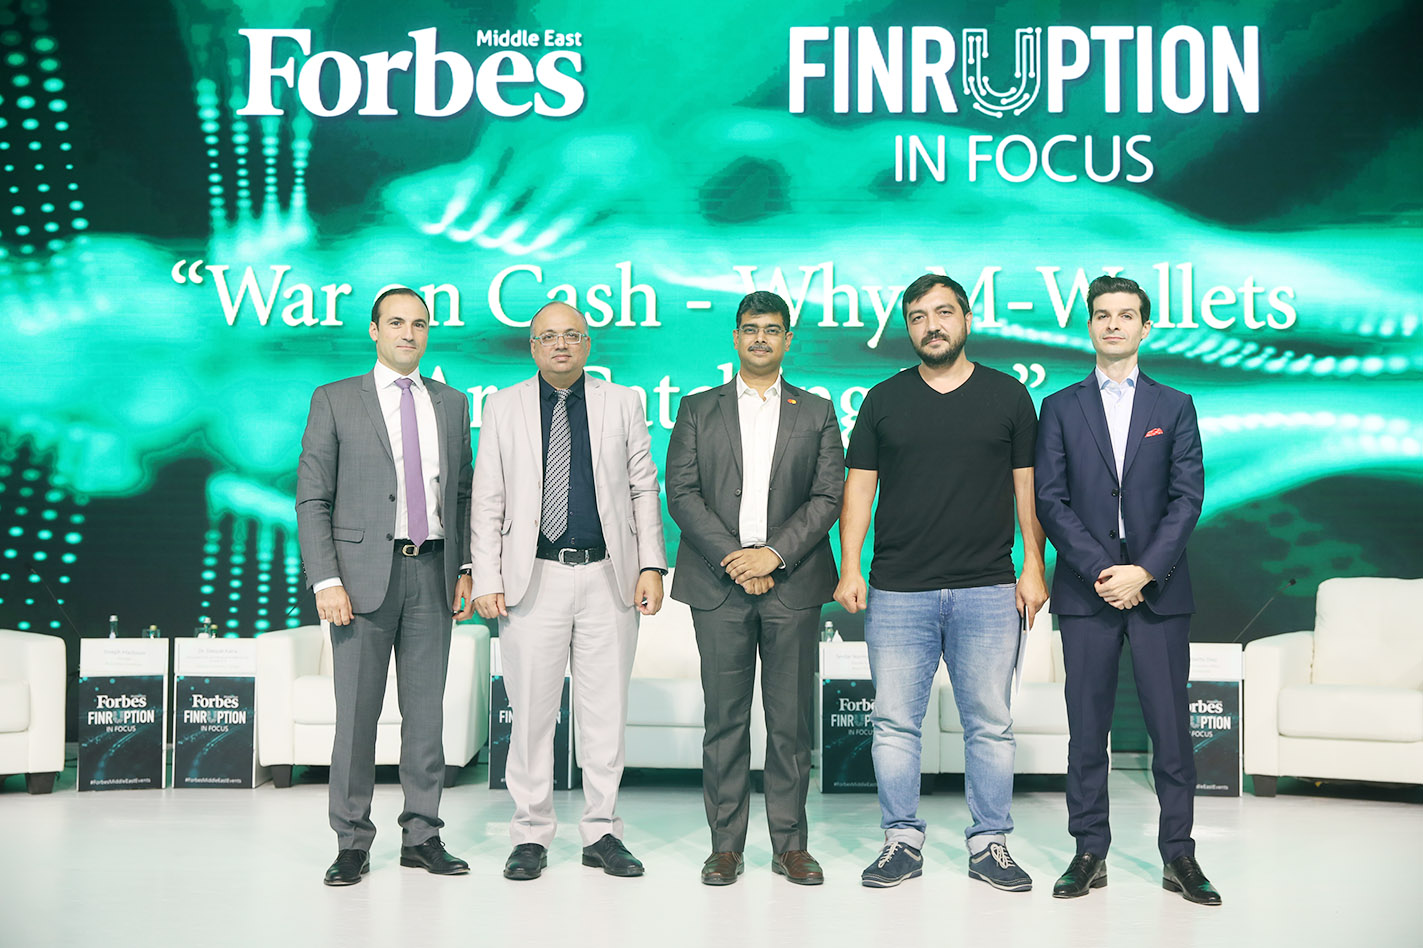 Finruption In Focus 2019